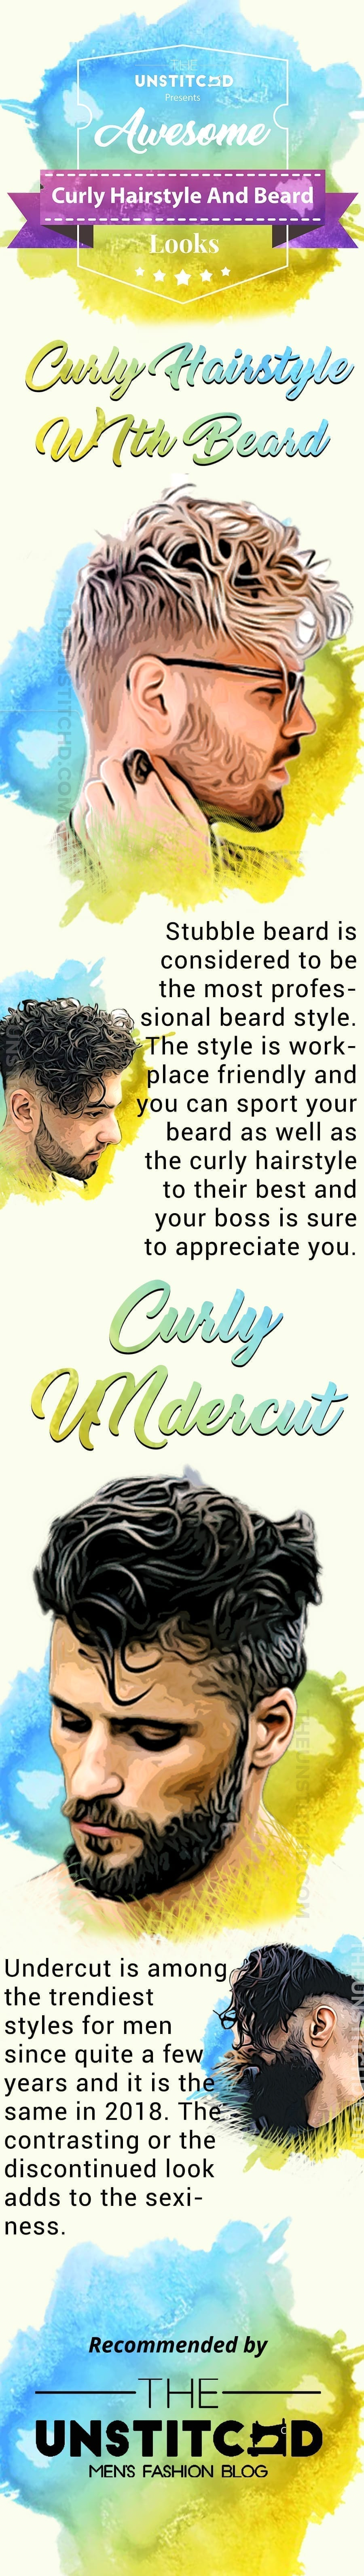 Curly-hairstyle-with-beard-info